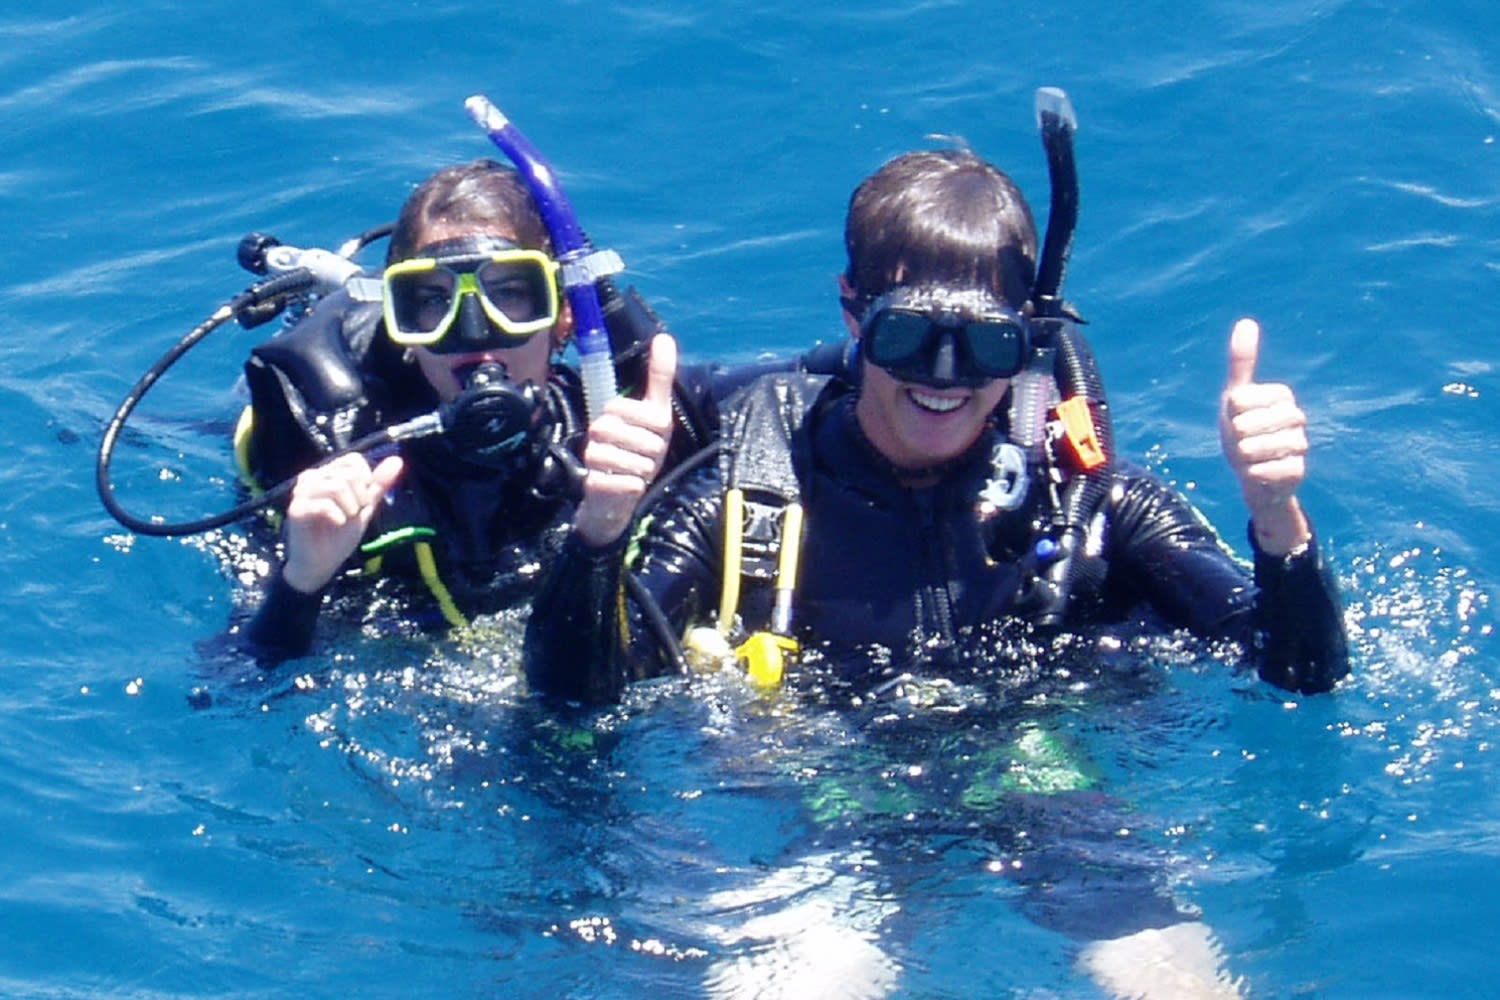 SCUBA Diving, 1 Day Introductory Dive Special - Great Barrier Reef, Cairns